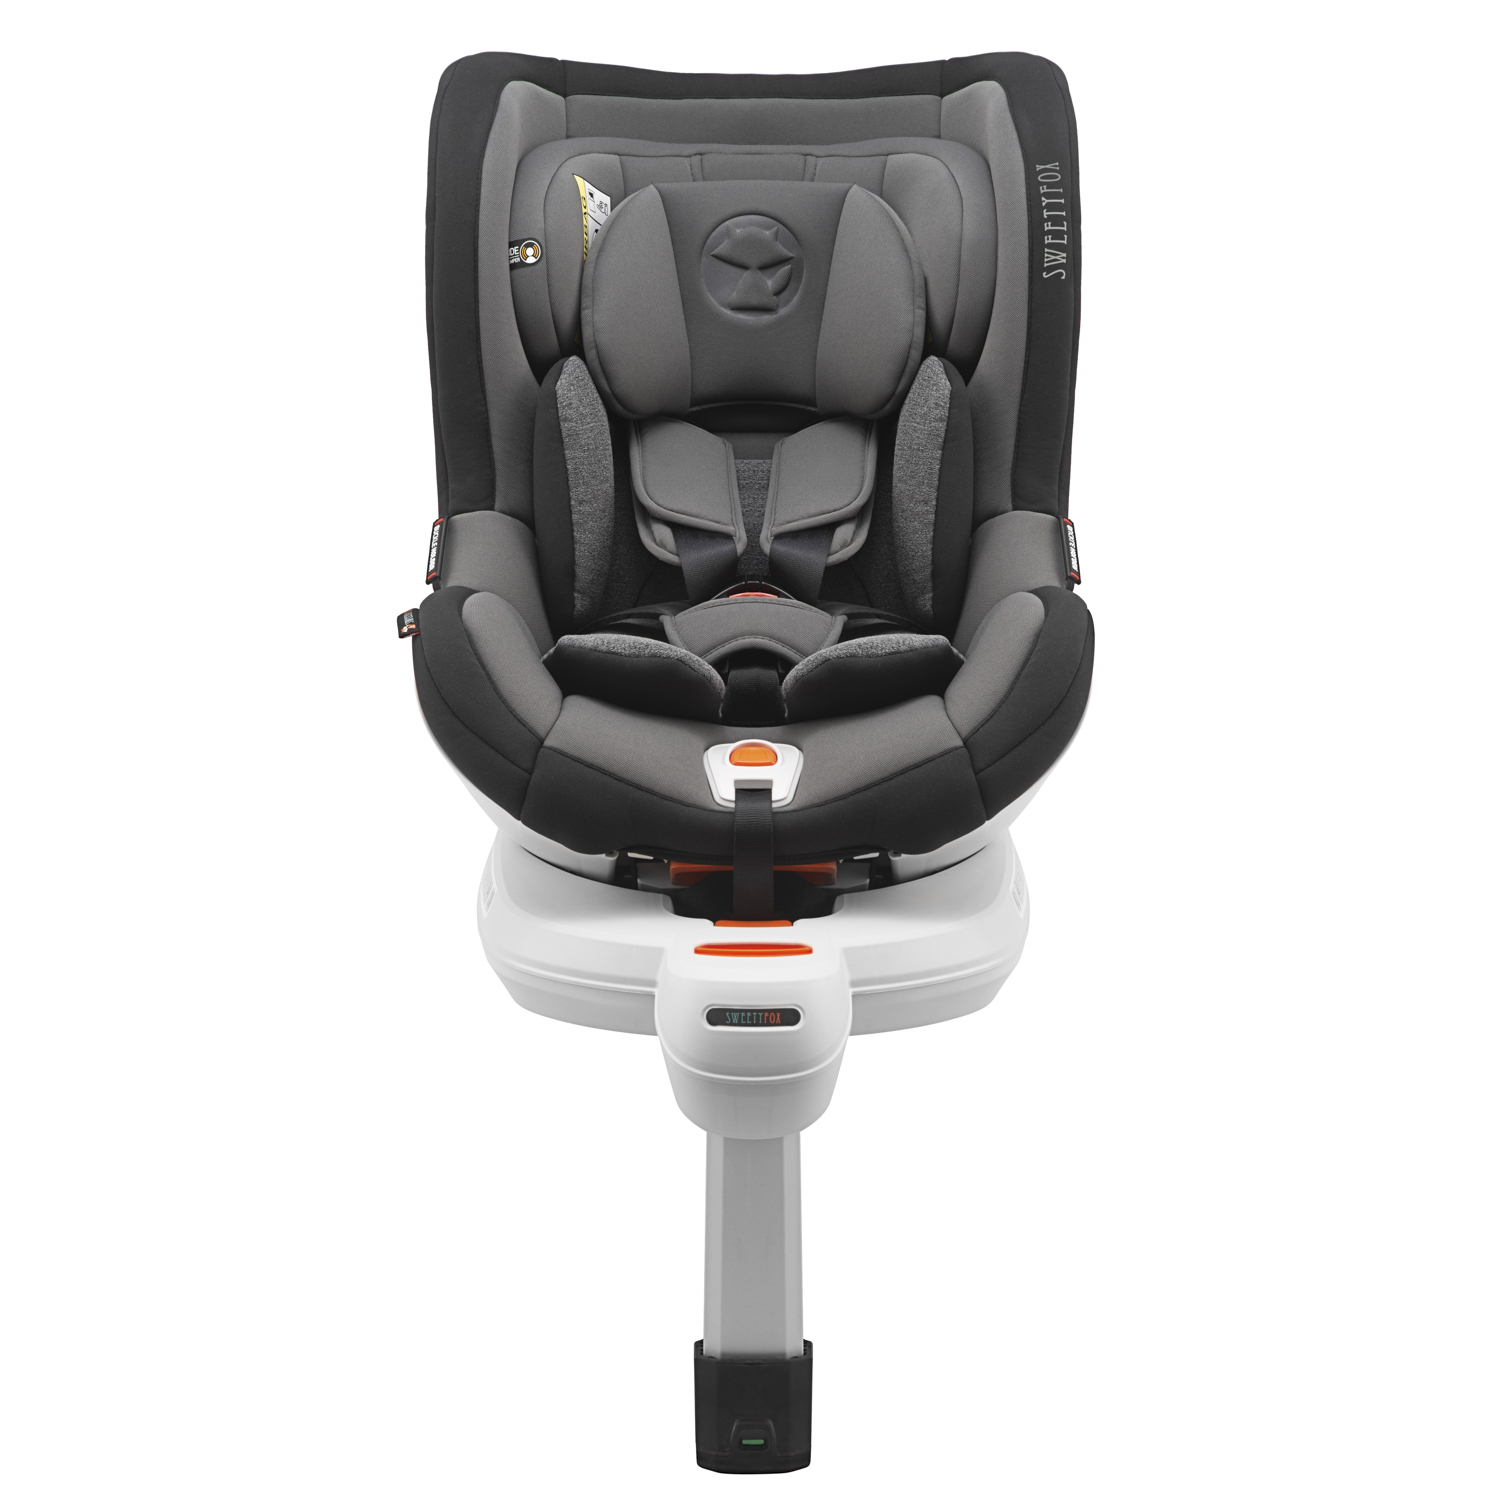 lettstudio_packshot_white_background_carseat1.jpg